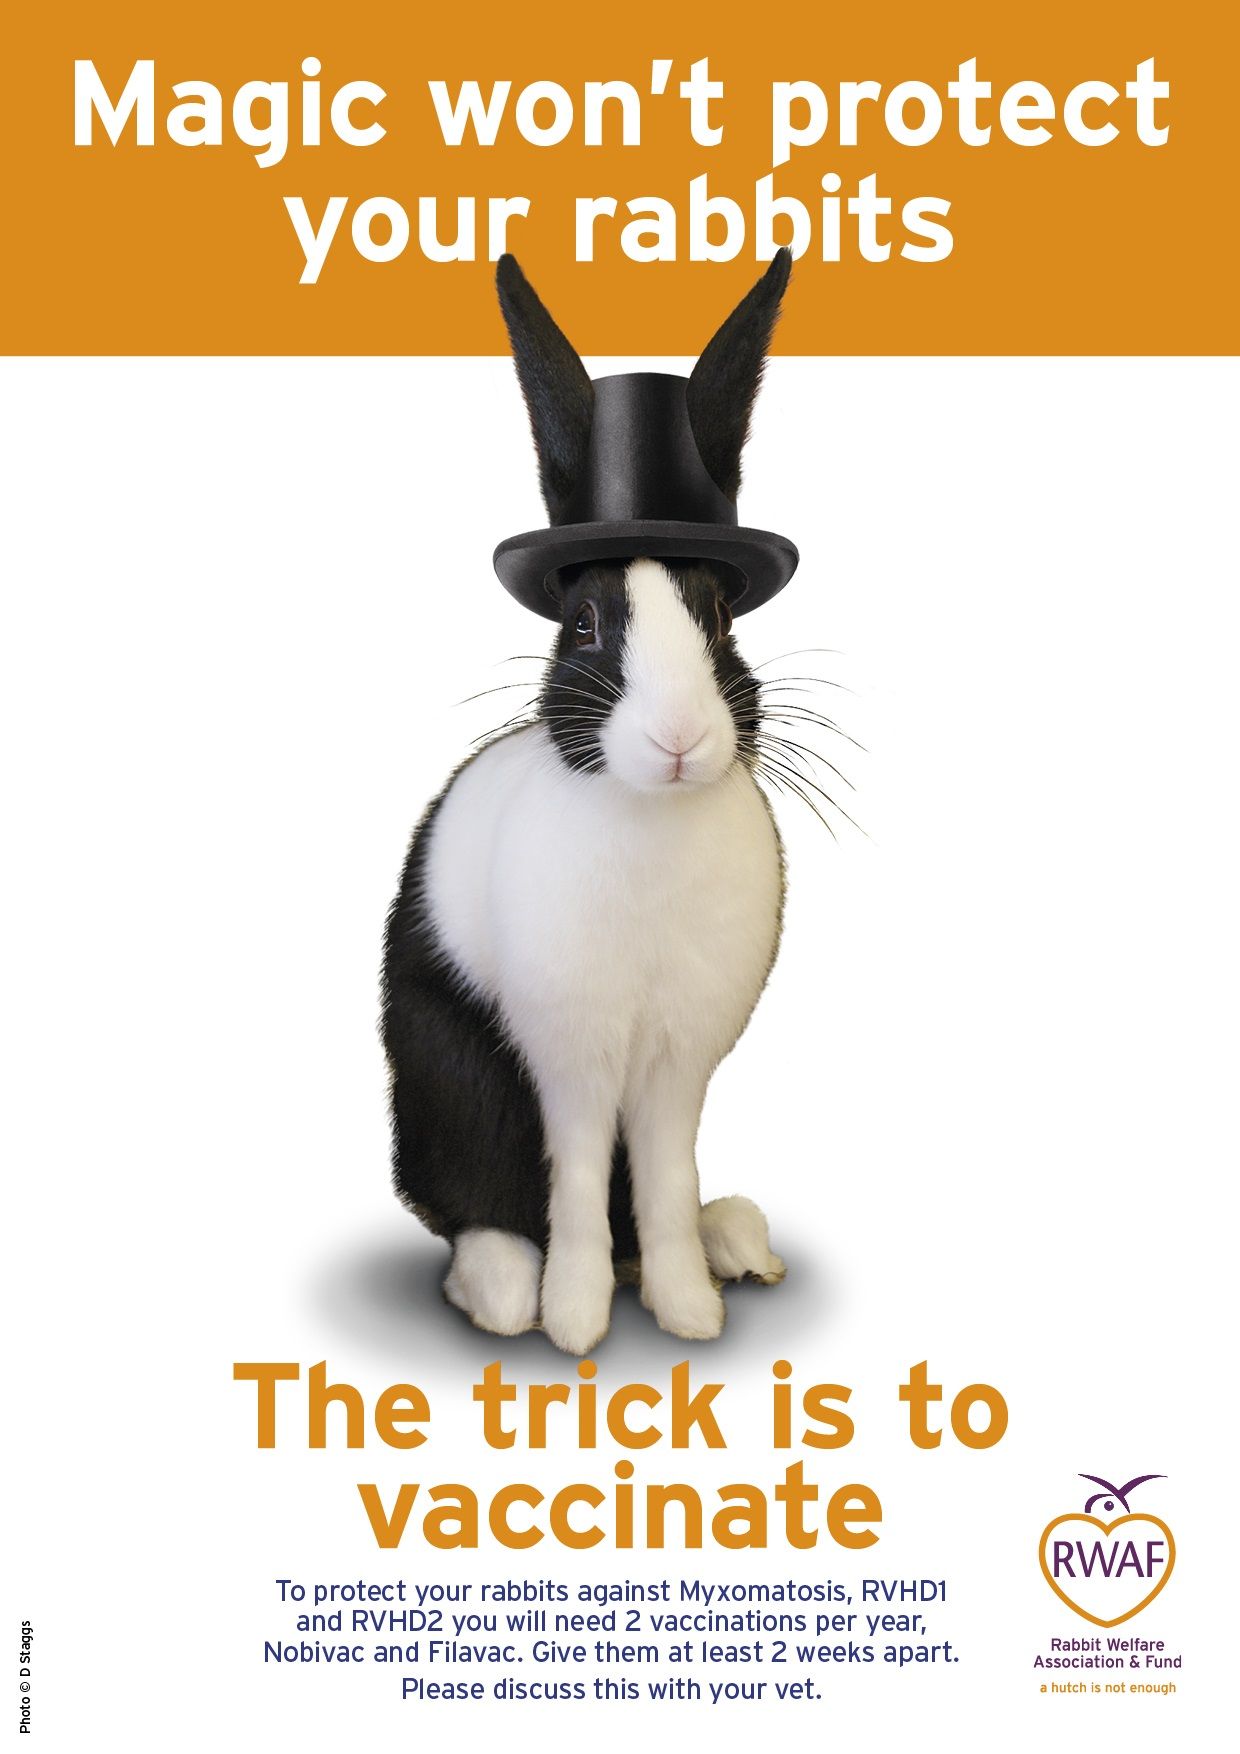 Vaccination poster by the Rabbit Welfare Association & Fund